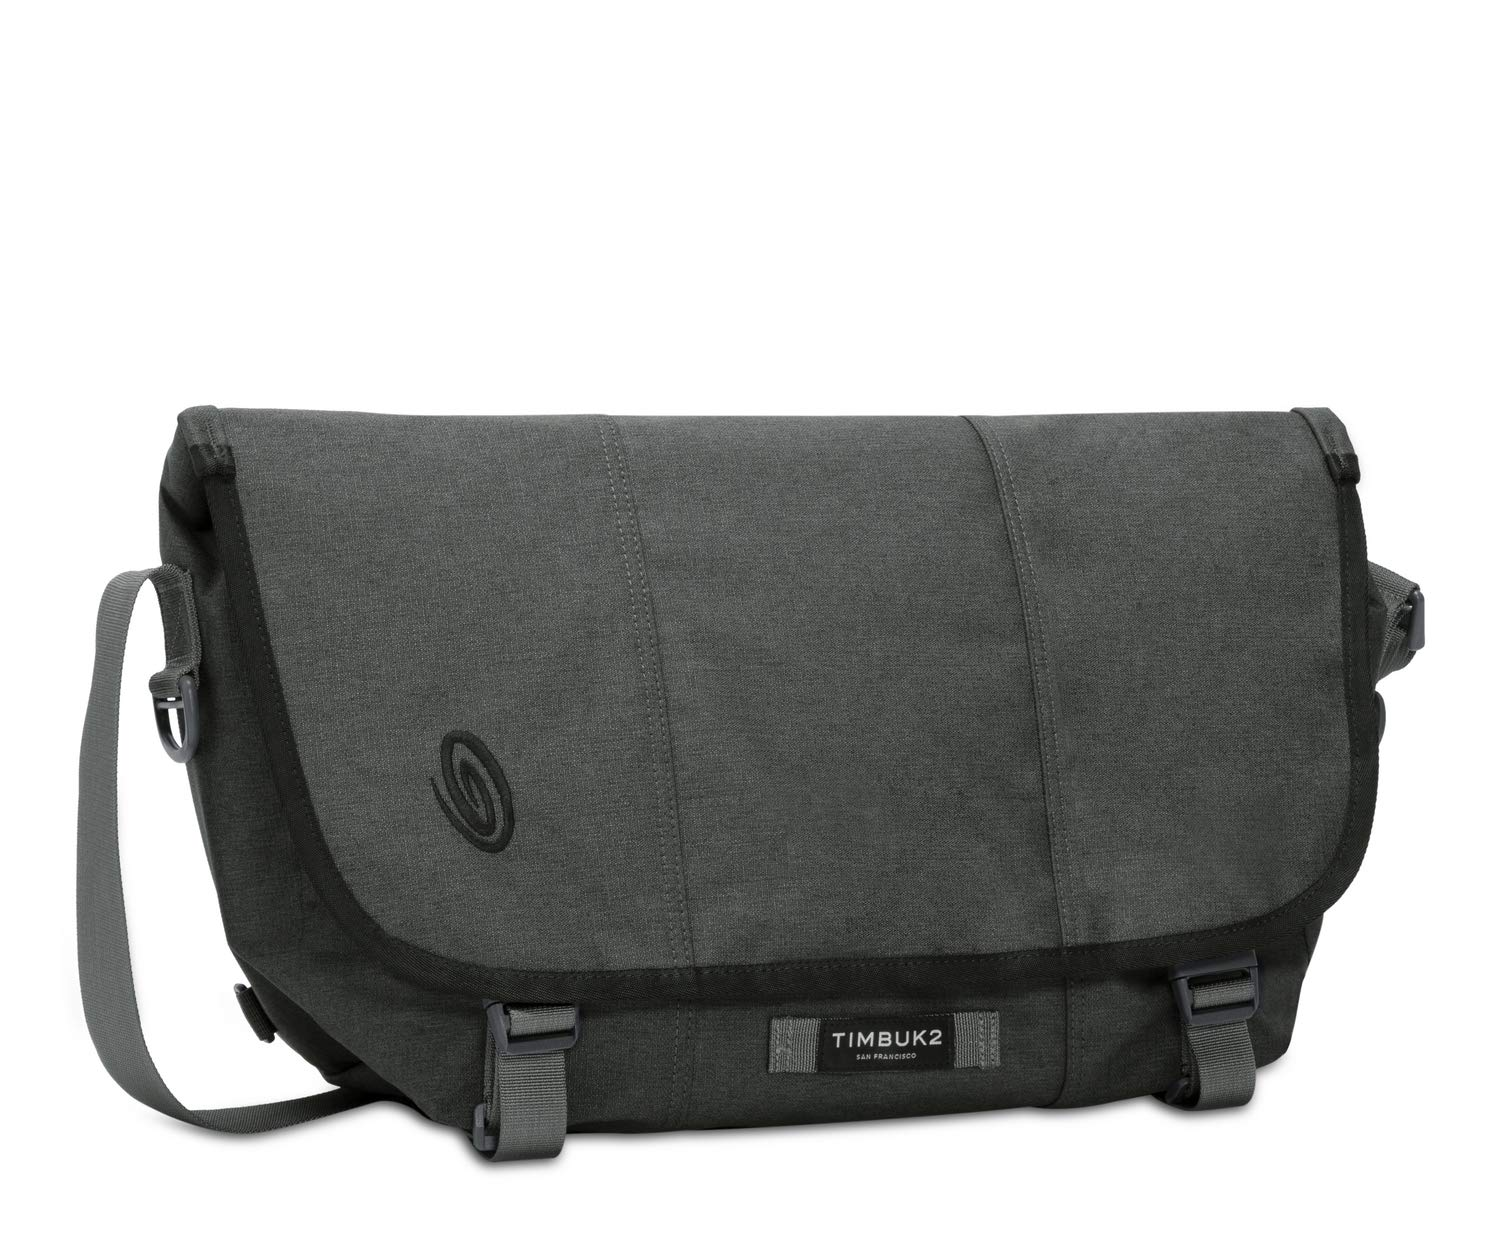 Timbuk2 Classic Messenger Bag, Gunmetal Tundra, Medium by Timbuk2